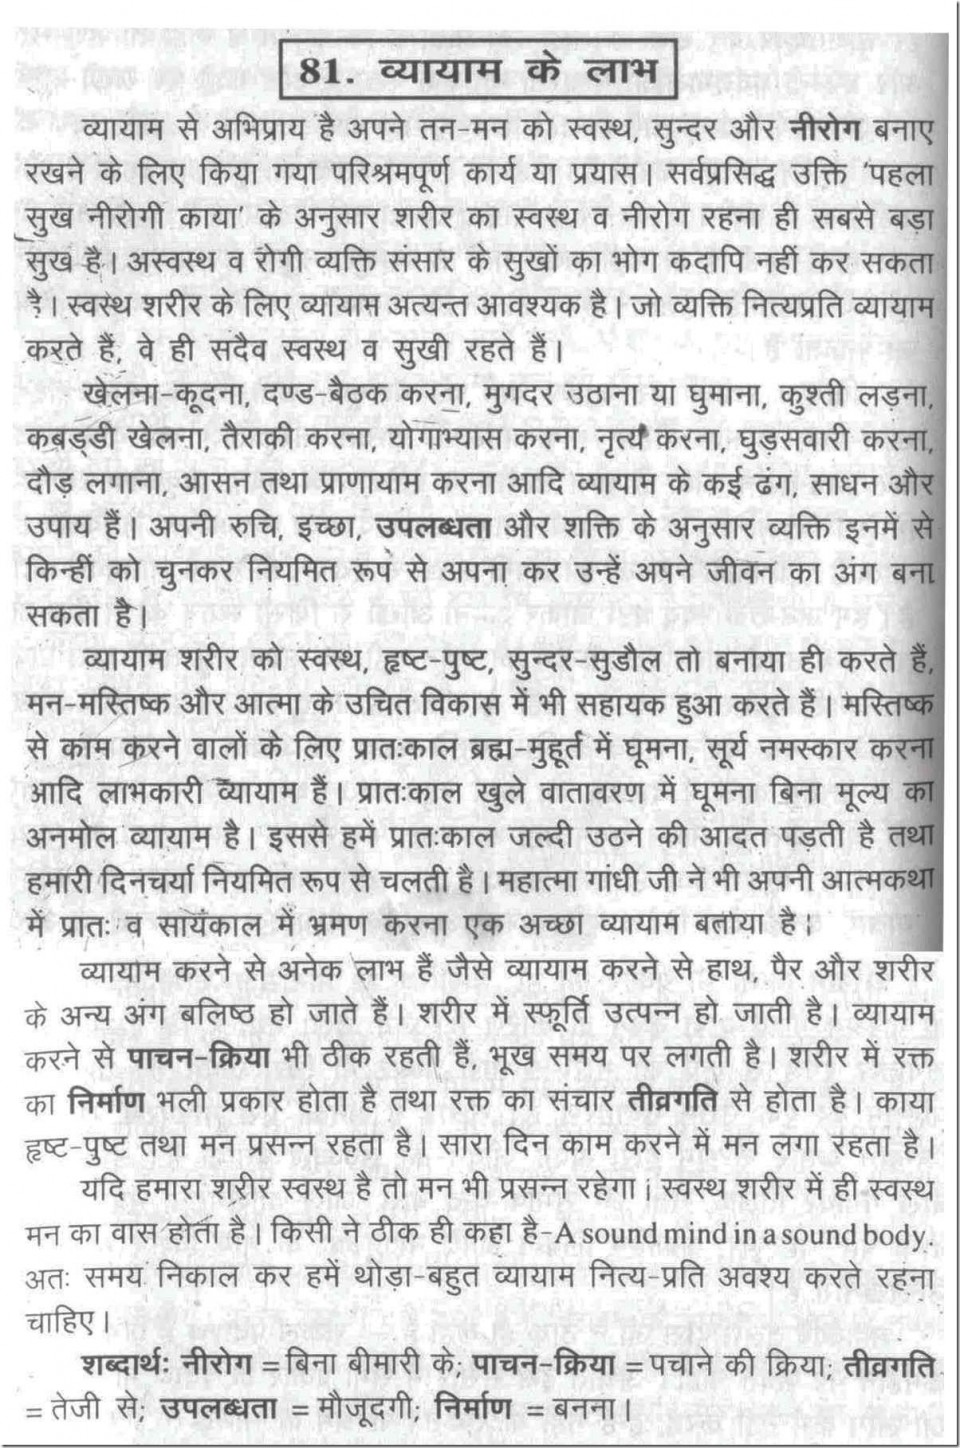 011 2563478896 Essay On Health And Fitness Through Food Good Habits In Hindi Exceptional Bad Healthy Eating 960